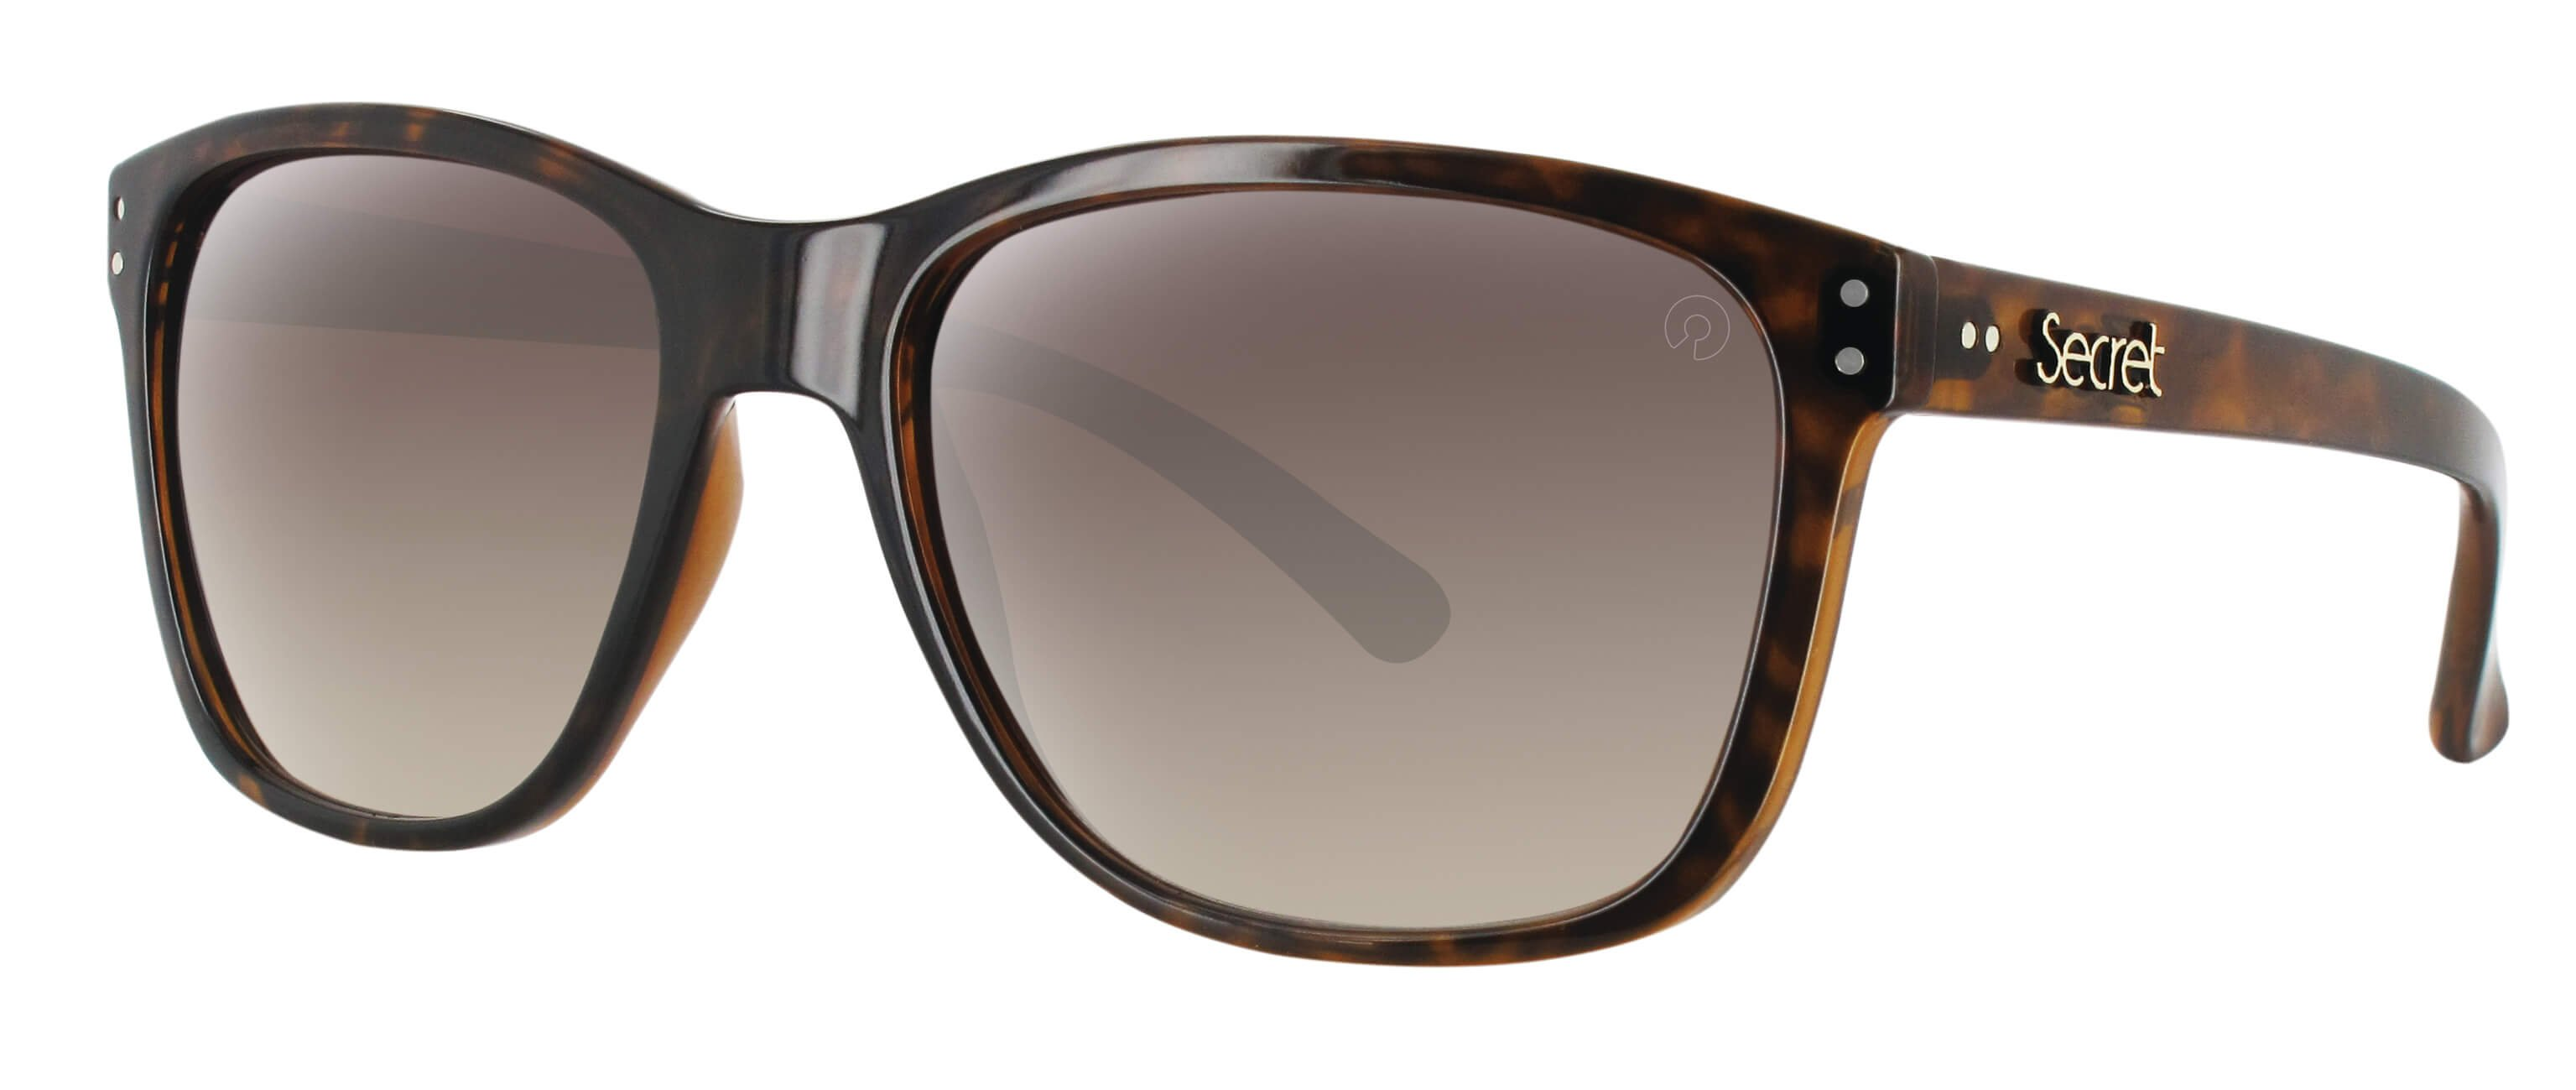 ÓC SECRET ZOE HAVANA TURTLE / POLARIZED GRADIENT BROWN